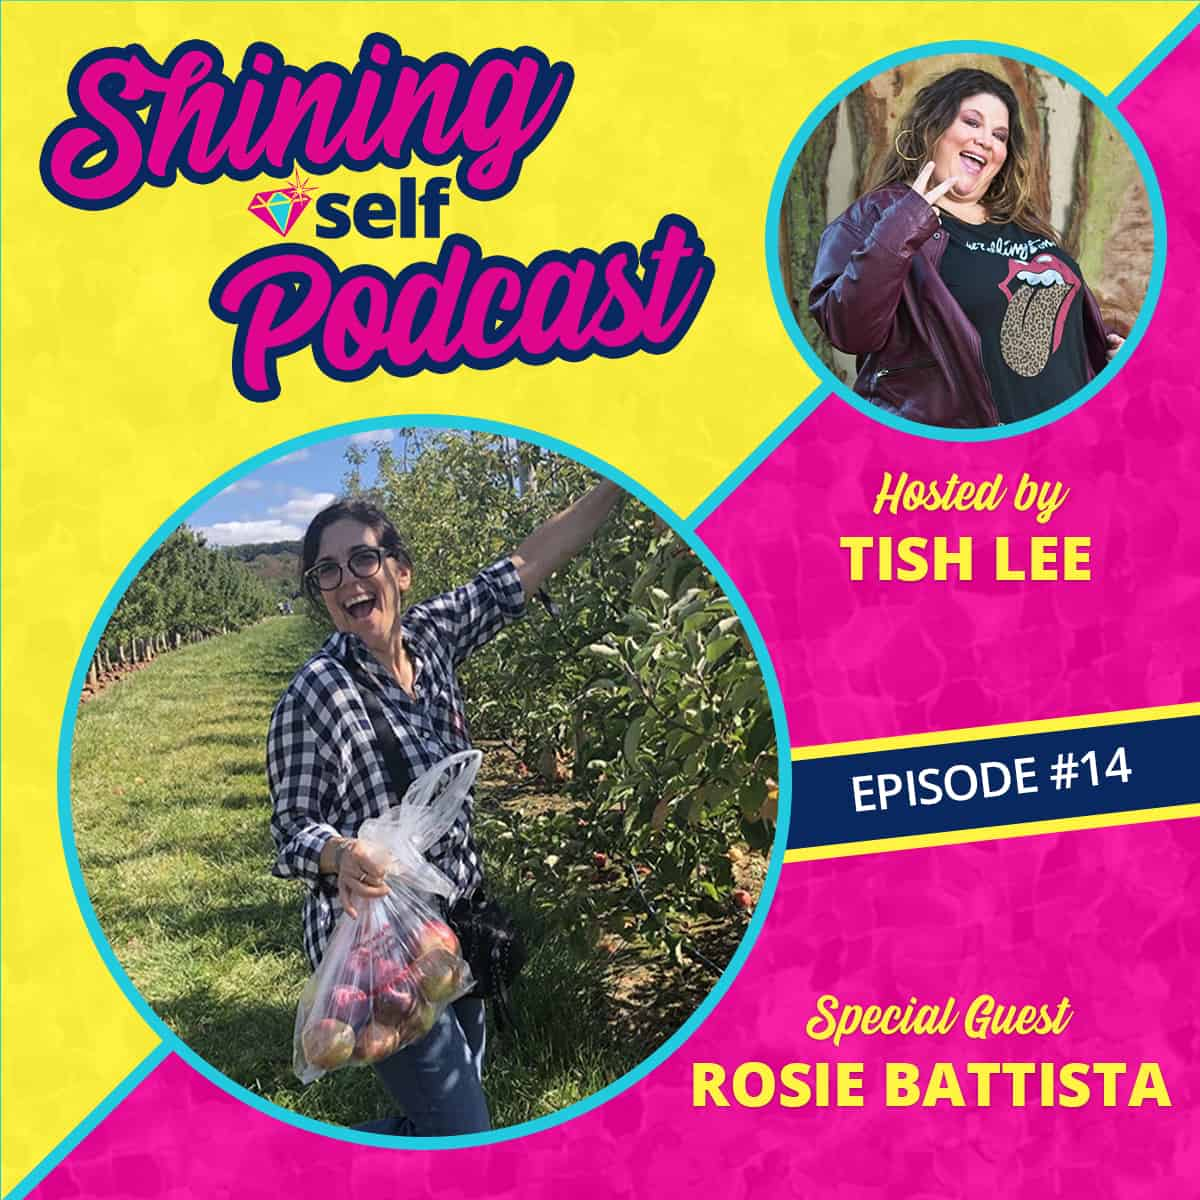 The Your Shining Self Podcast